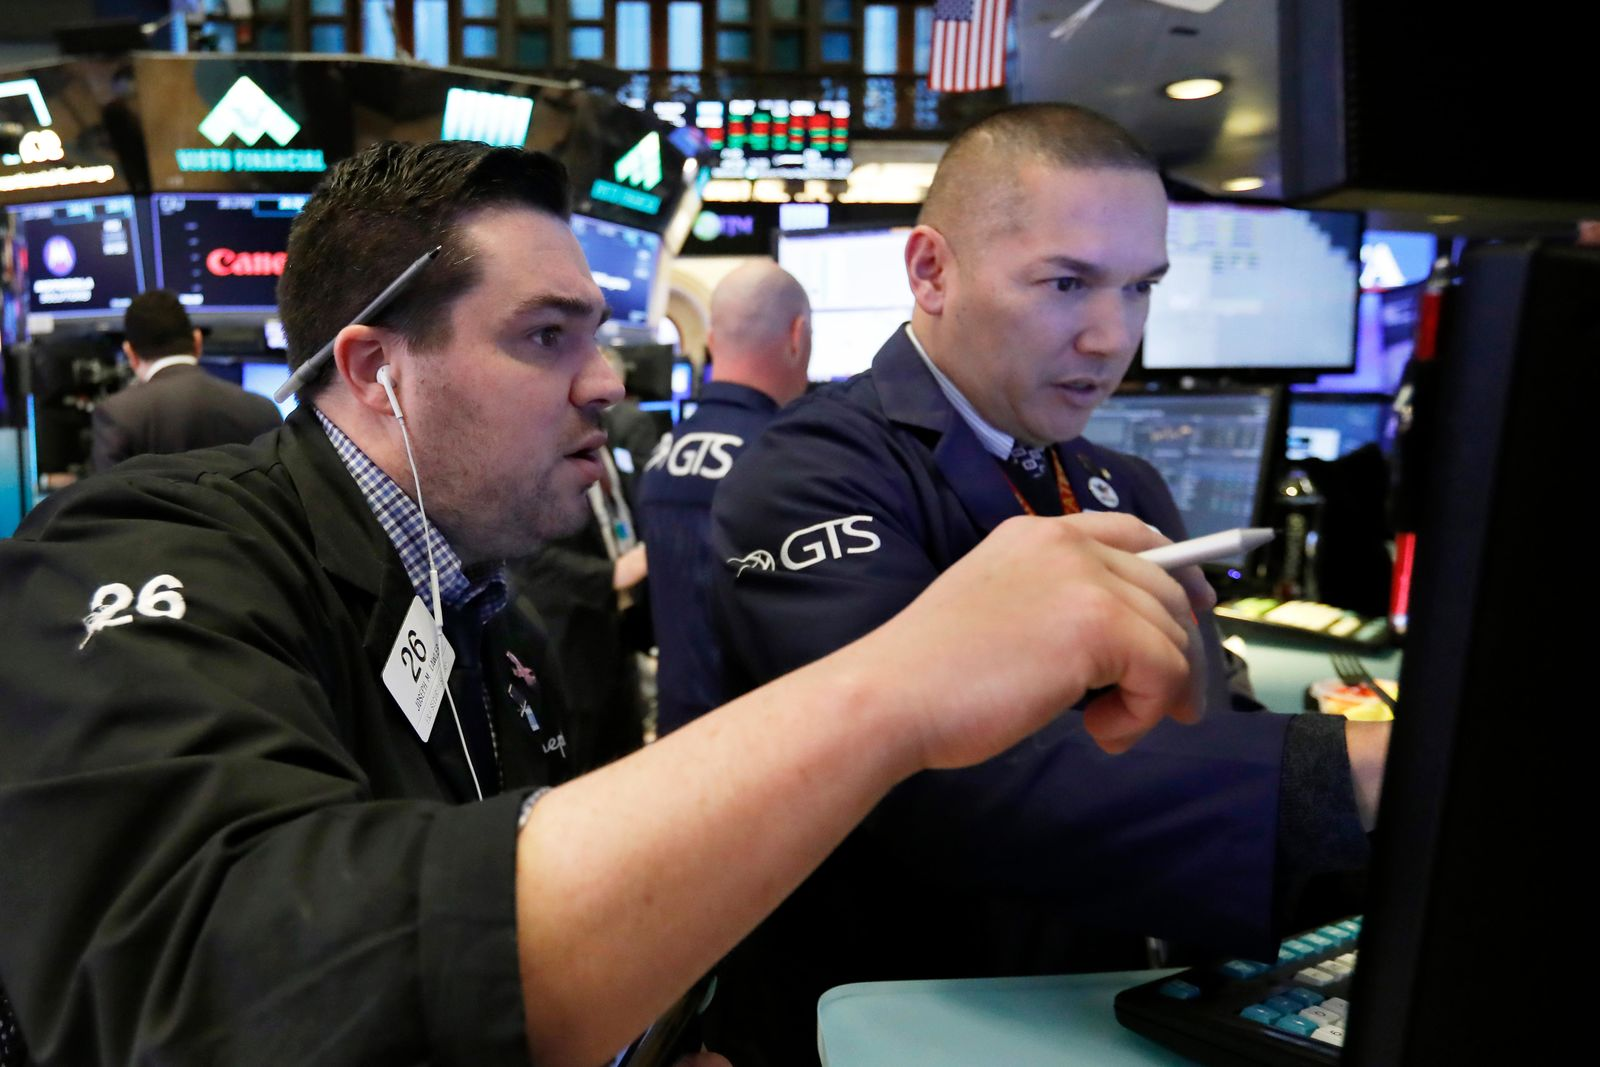 Trader Joseph Lawler, left, and specialist Mark Otto work on the floor of the New York Stock Exchange, Friday, Jan. 11, 2019. (AP Photo/Richard Drew)